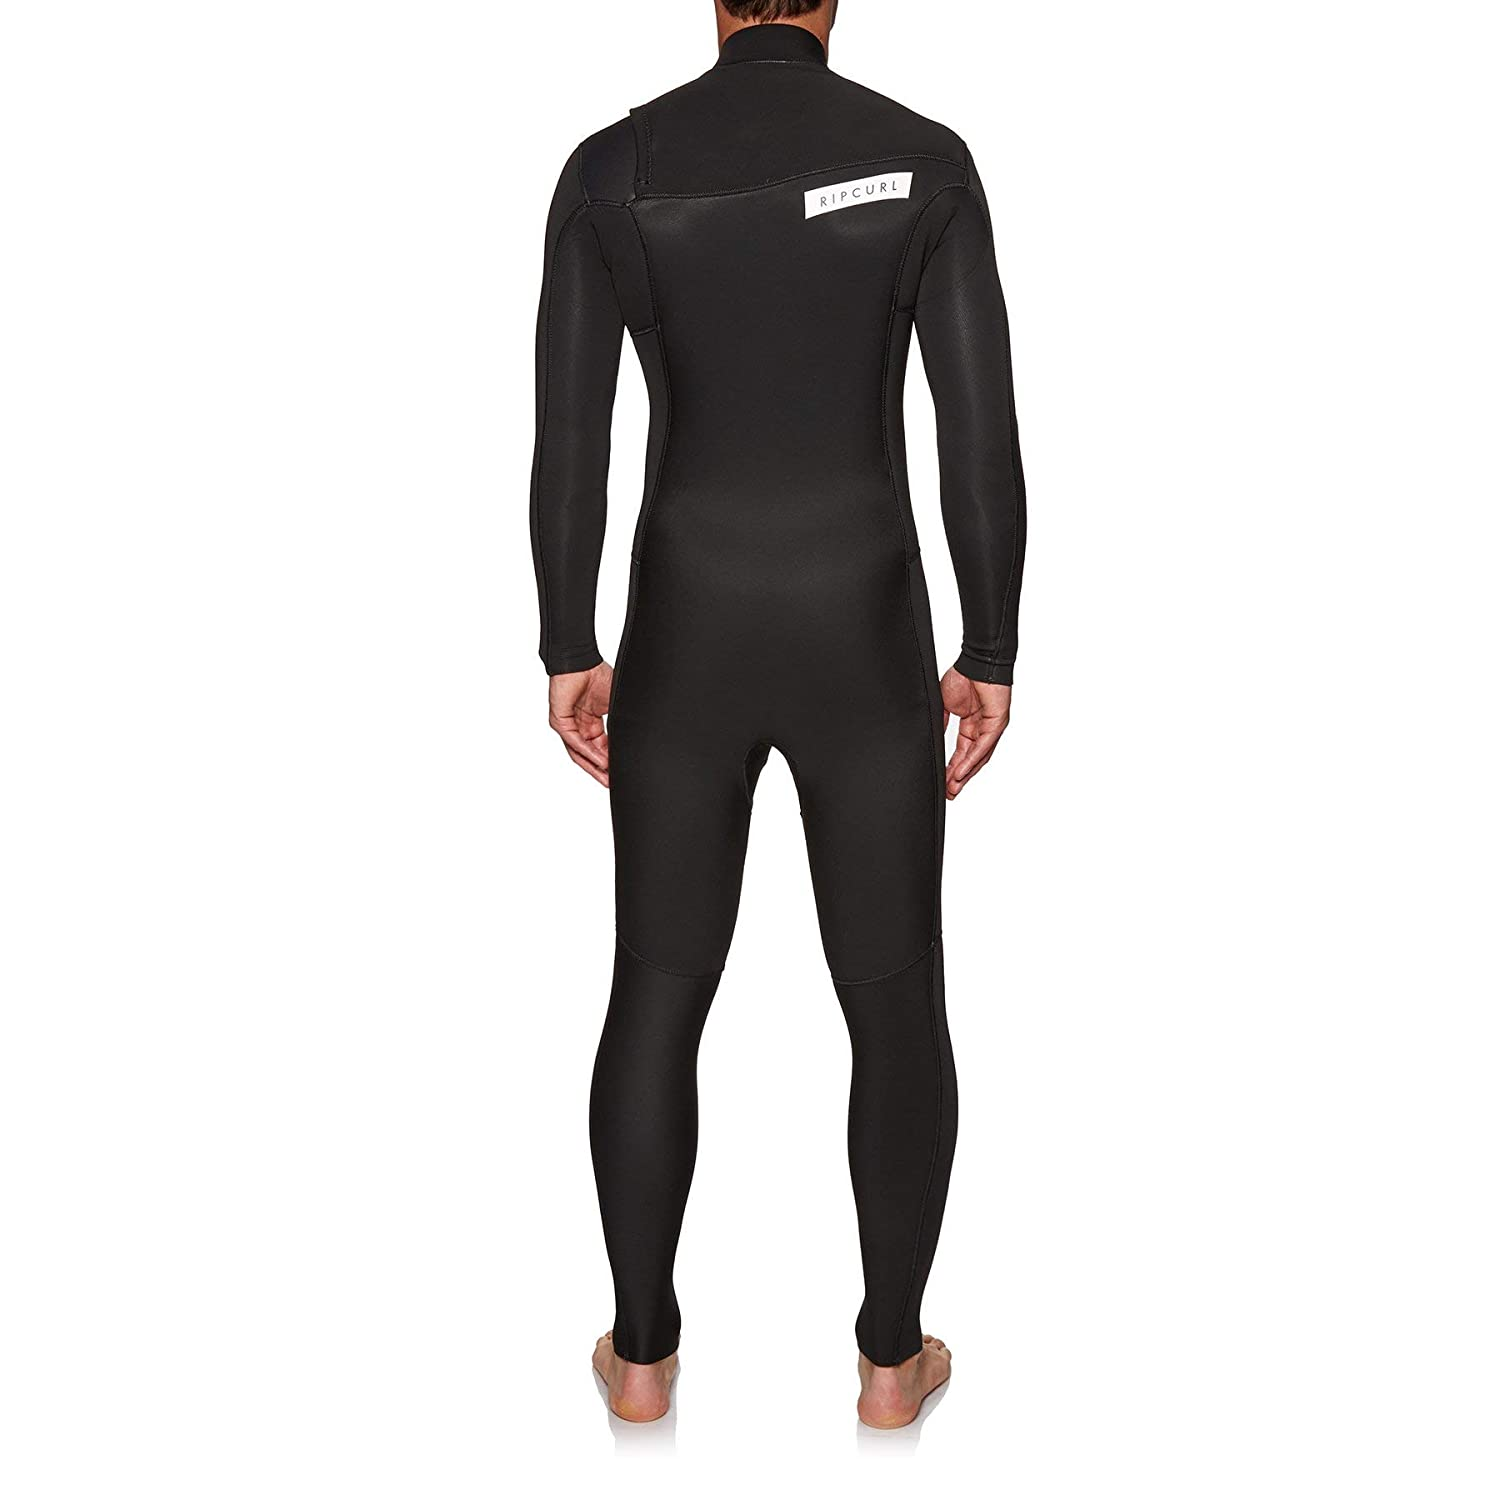 RIP CURL 2018/19 Aggrolite 4/3mm Chest Zip Wetsuit Black WSM9RM: Amazon.es: Deportes y aire libre